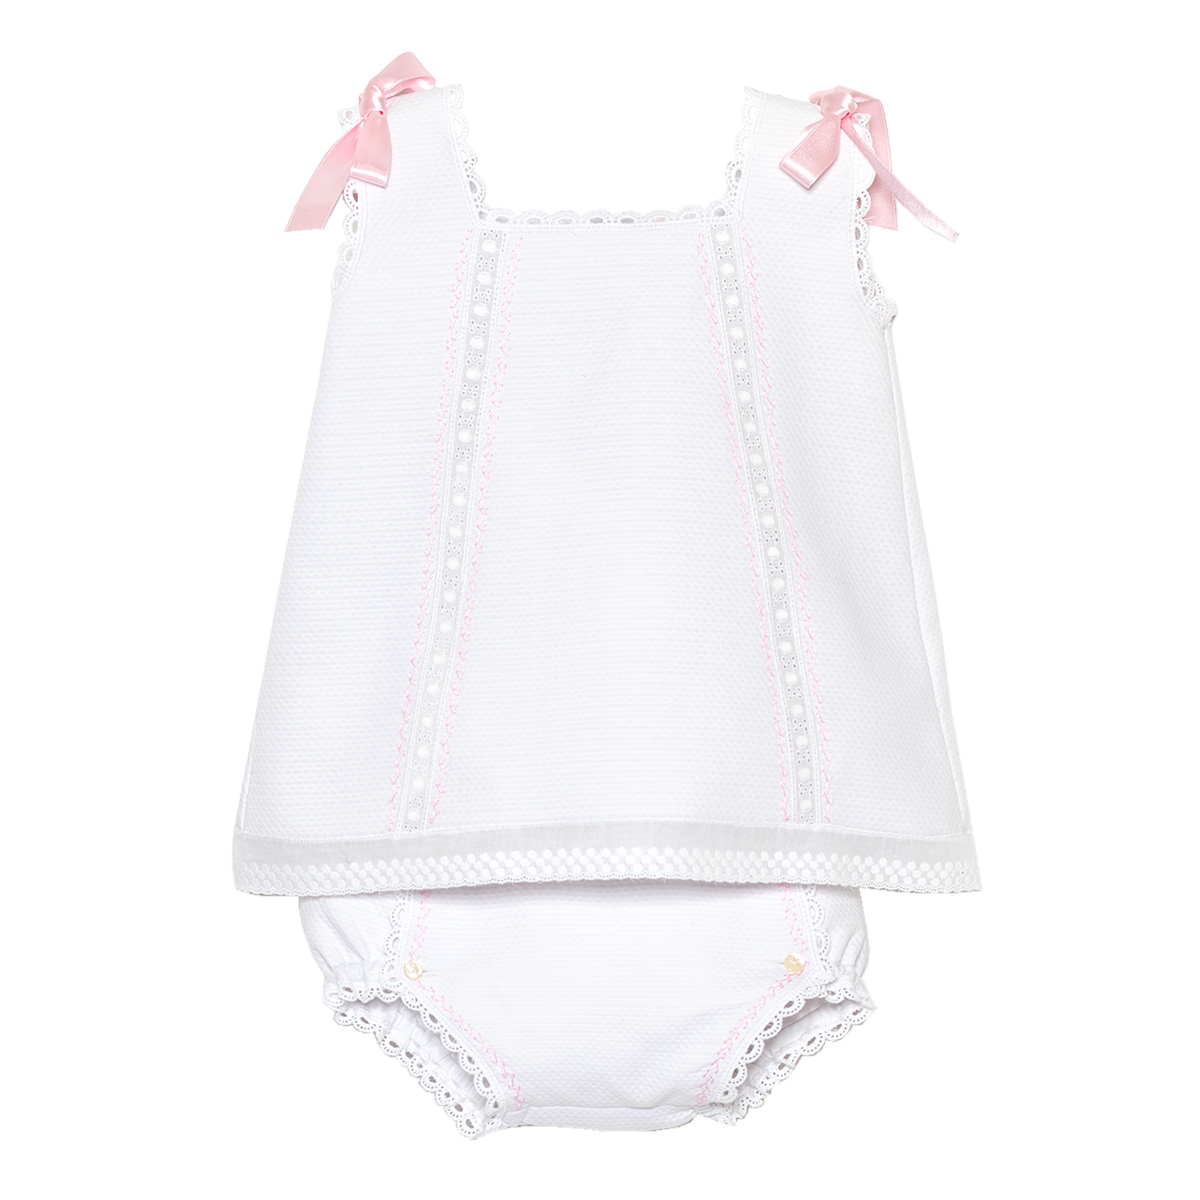 Tot A Porter Baby Pique Cotton Short Dress FW19